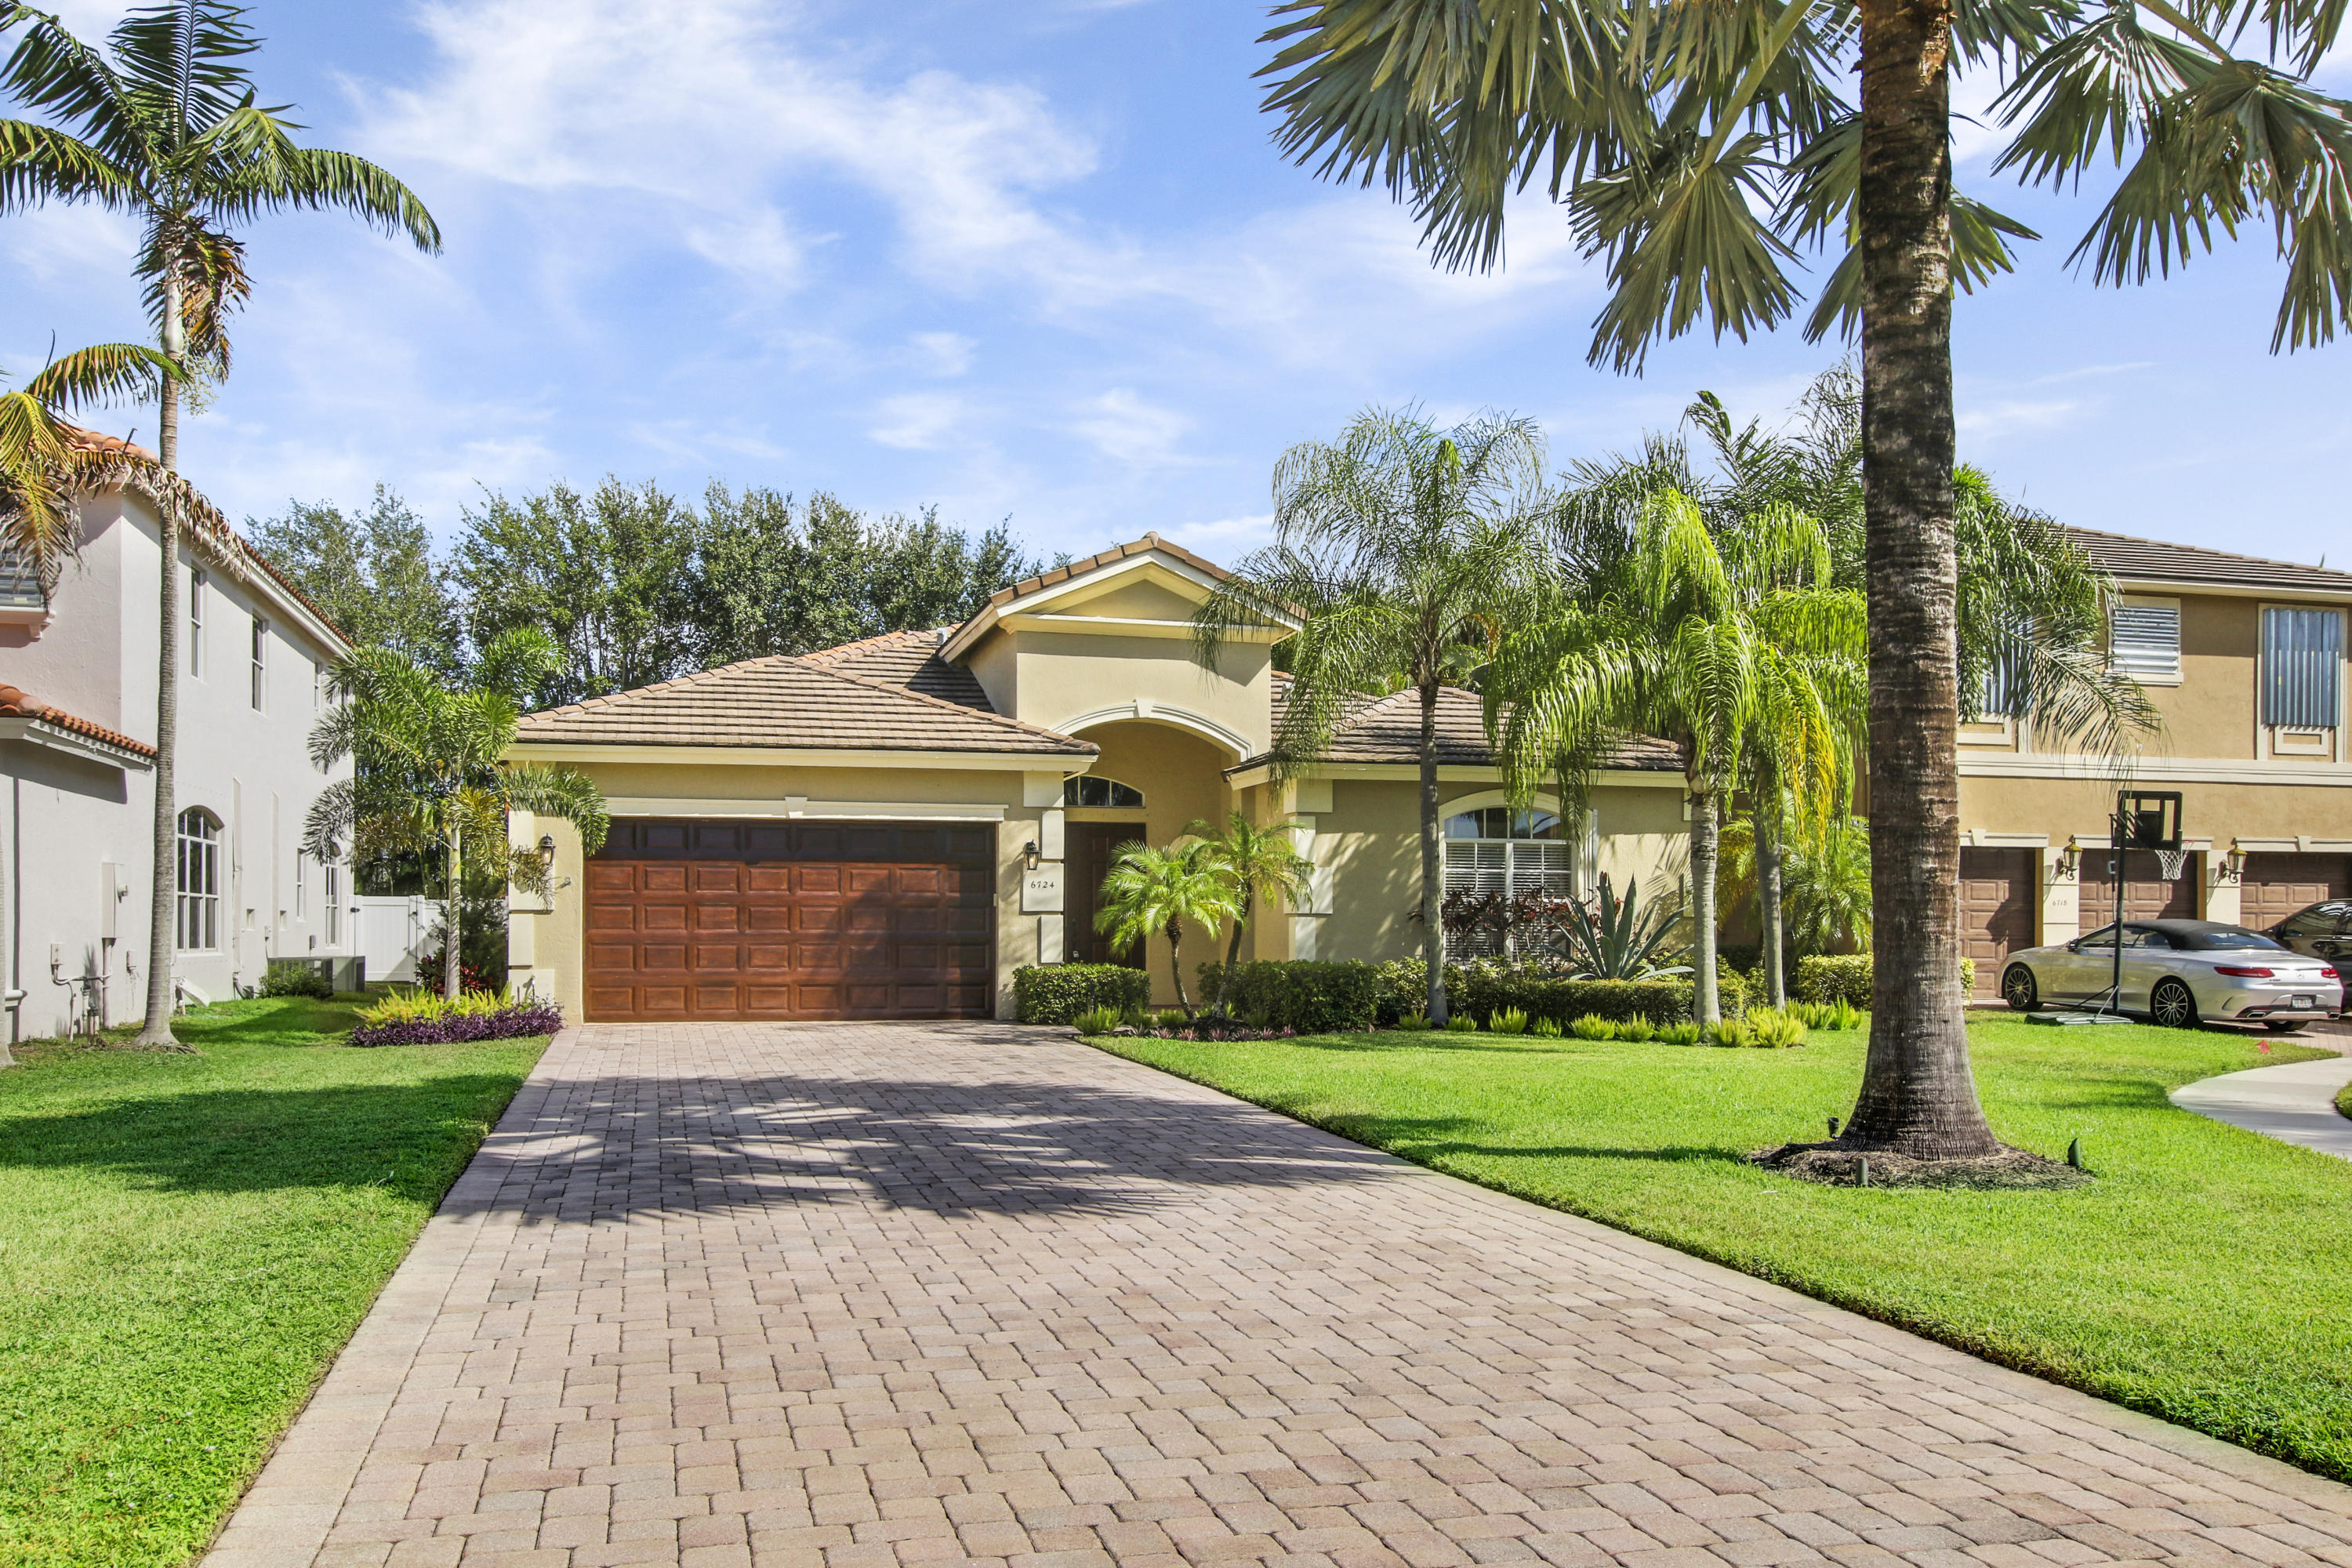 Lake Worth: Journeys End - listed at 419,900 (6724 Shaina Ct)